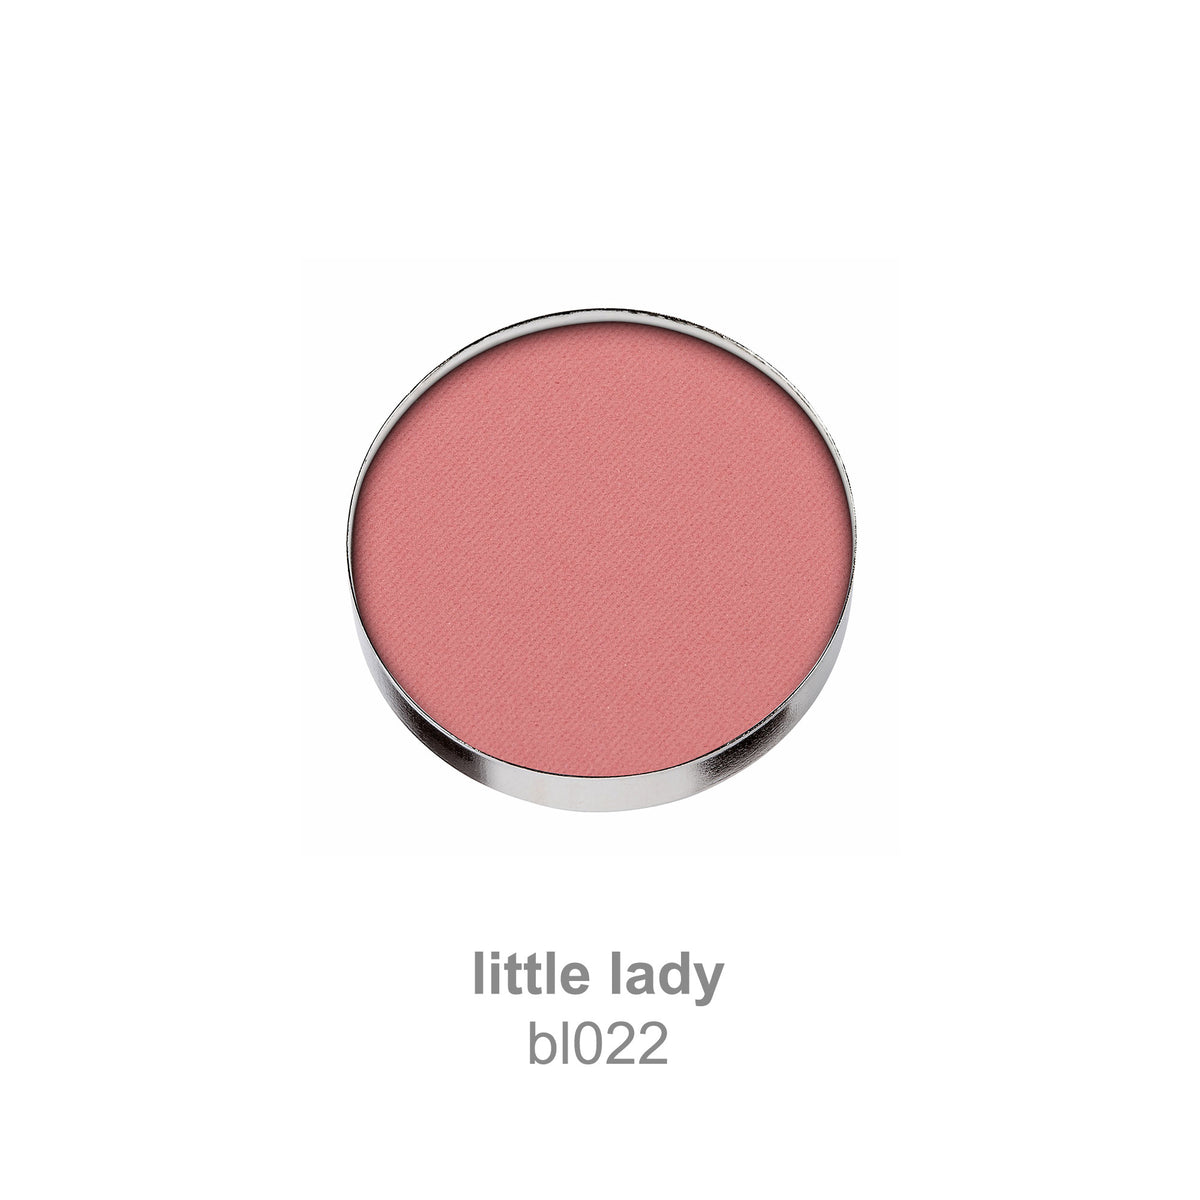 little lady bl022